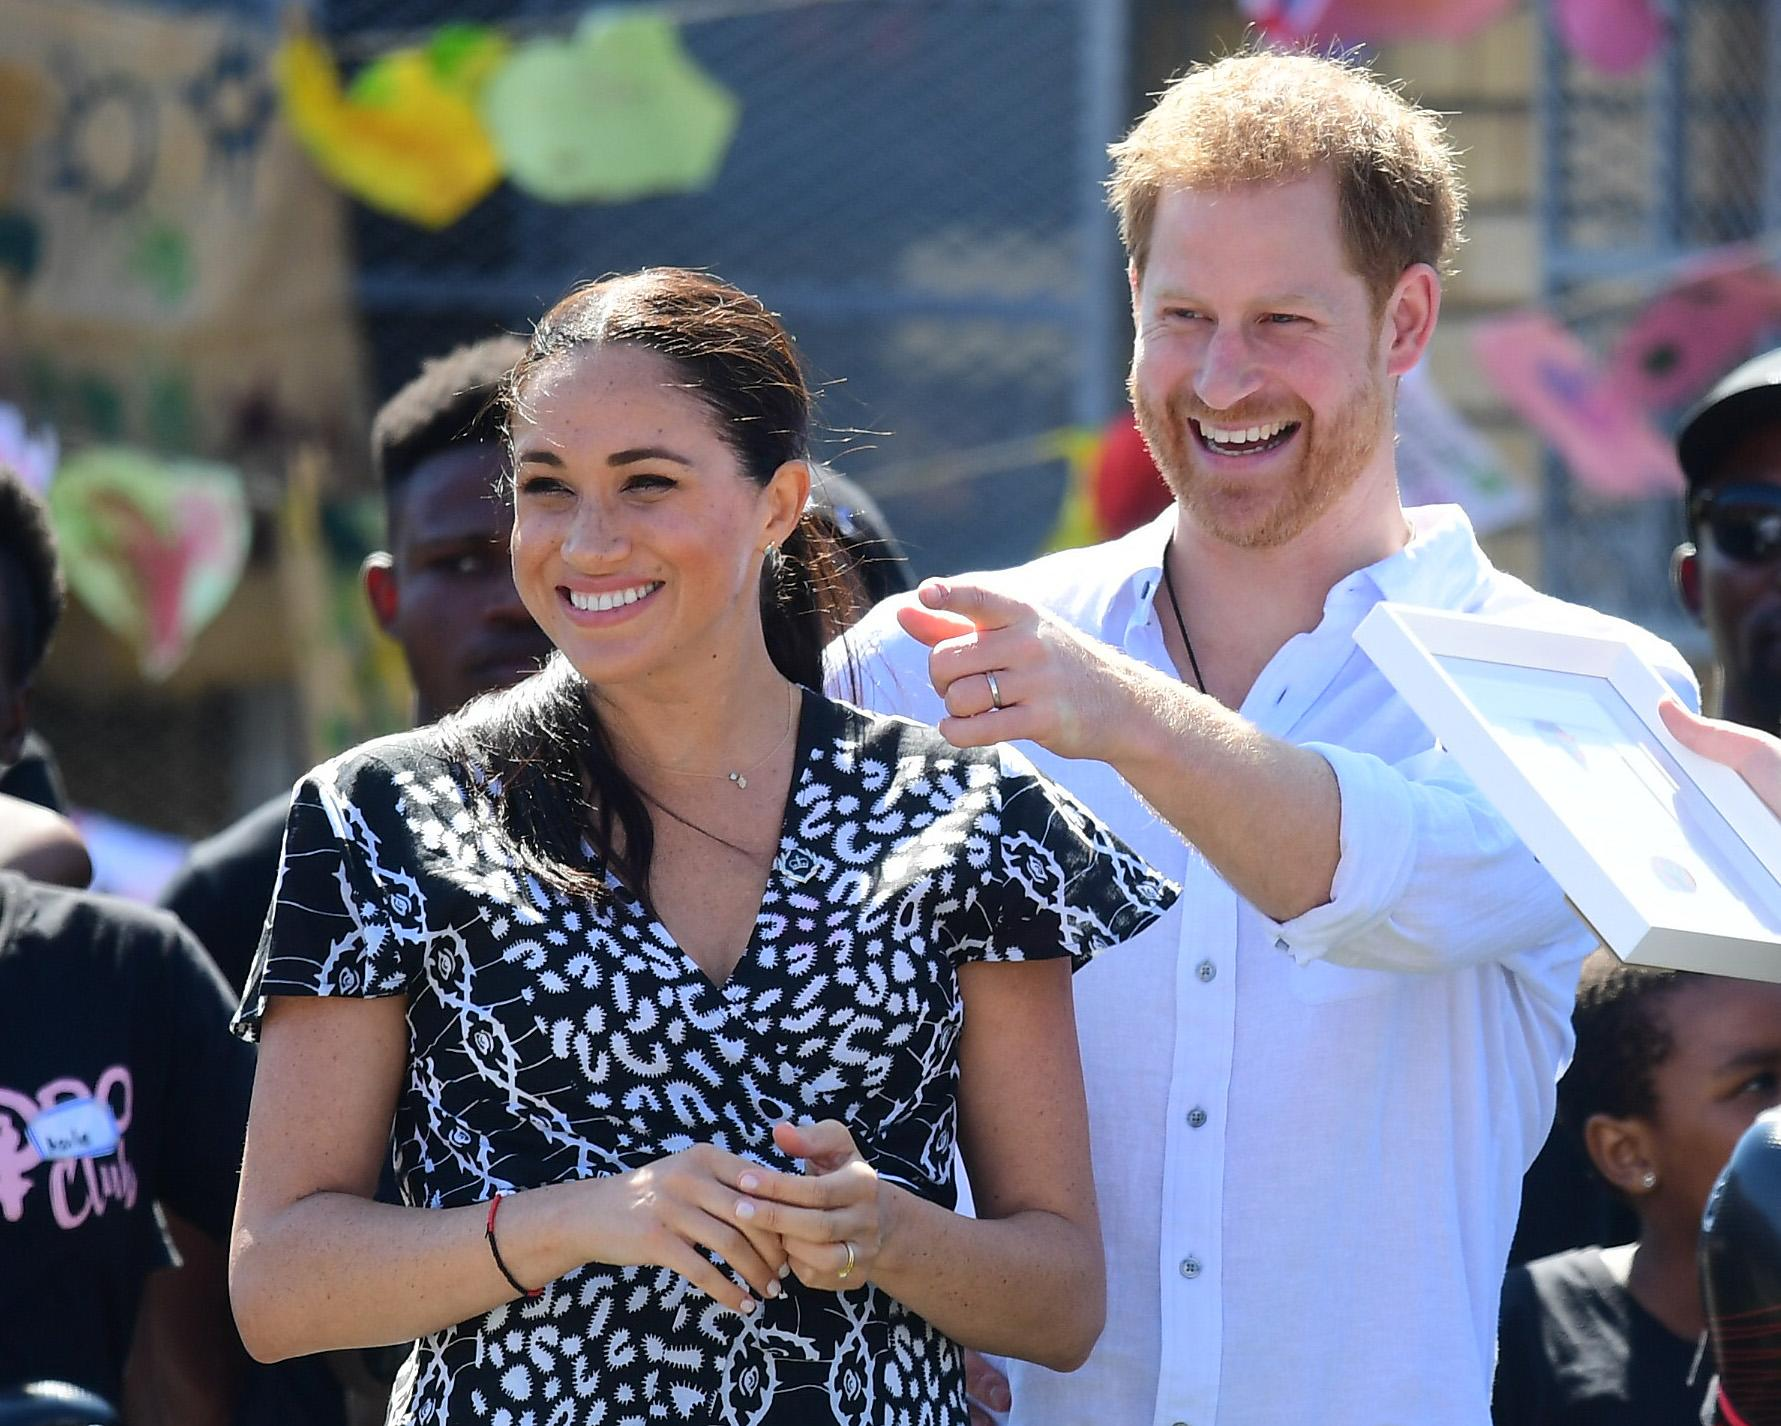 CAPE TOWN, SOUTH AFRICA - SEPTEMBER 23: Prince Harry, Duke of Sussex and Meghan, Duchess of Sussex visit a Justice Desk initiative, a workshop that teaches children about their rights, self-awareness and safety, in Nyanga township, during their royal tour of South Africa on September 23, 2019 in Cape Town, South Africa. (Photo by Samir Hussein/WireImage)